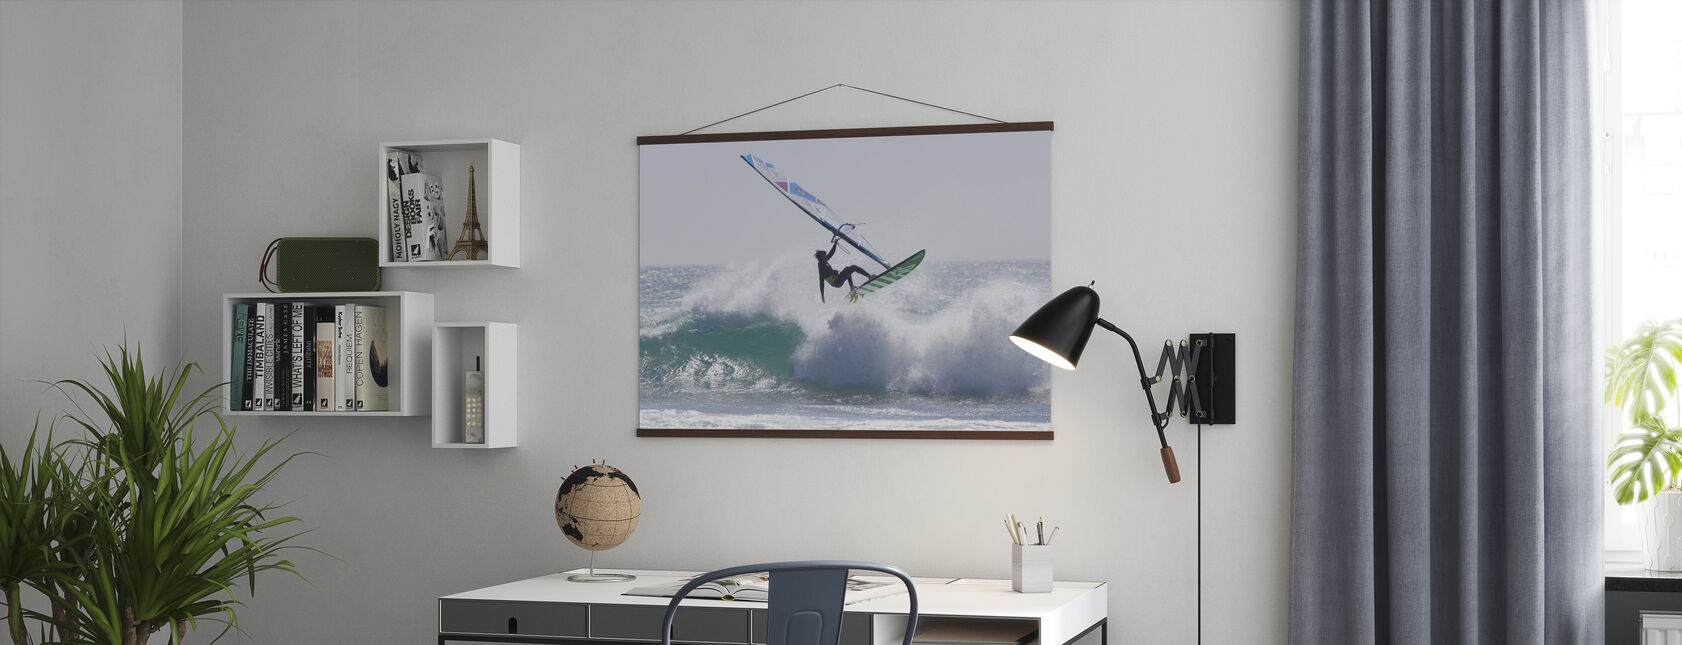 Windsurfing Jump - Poster - Office